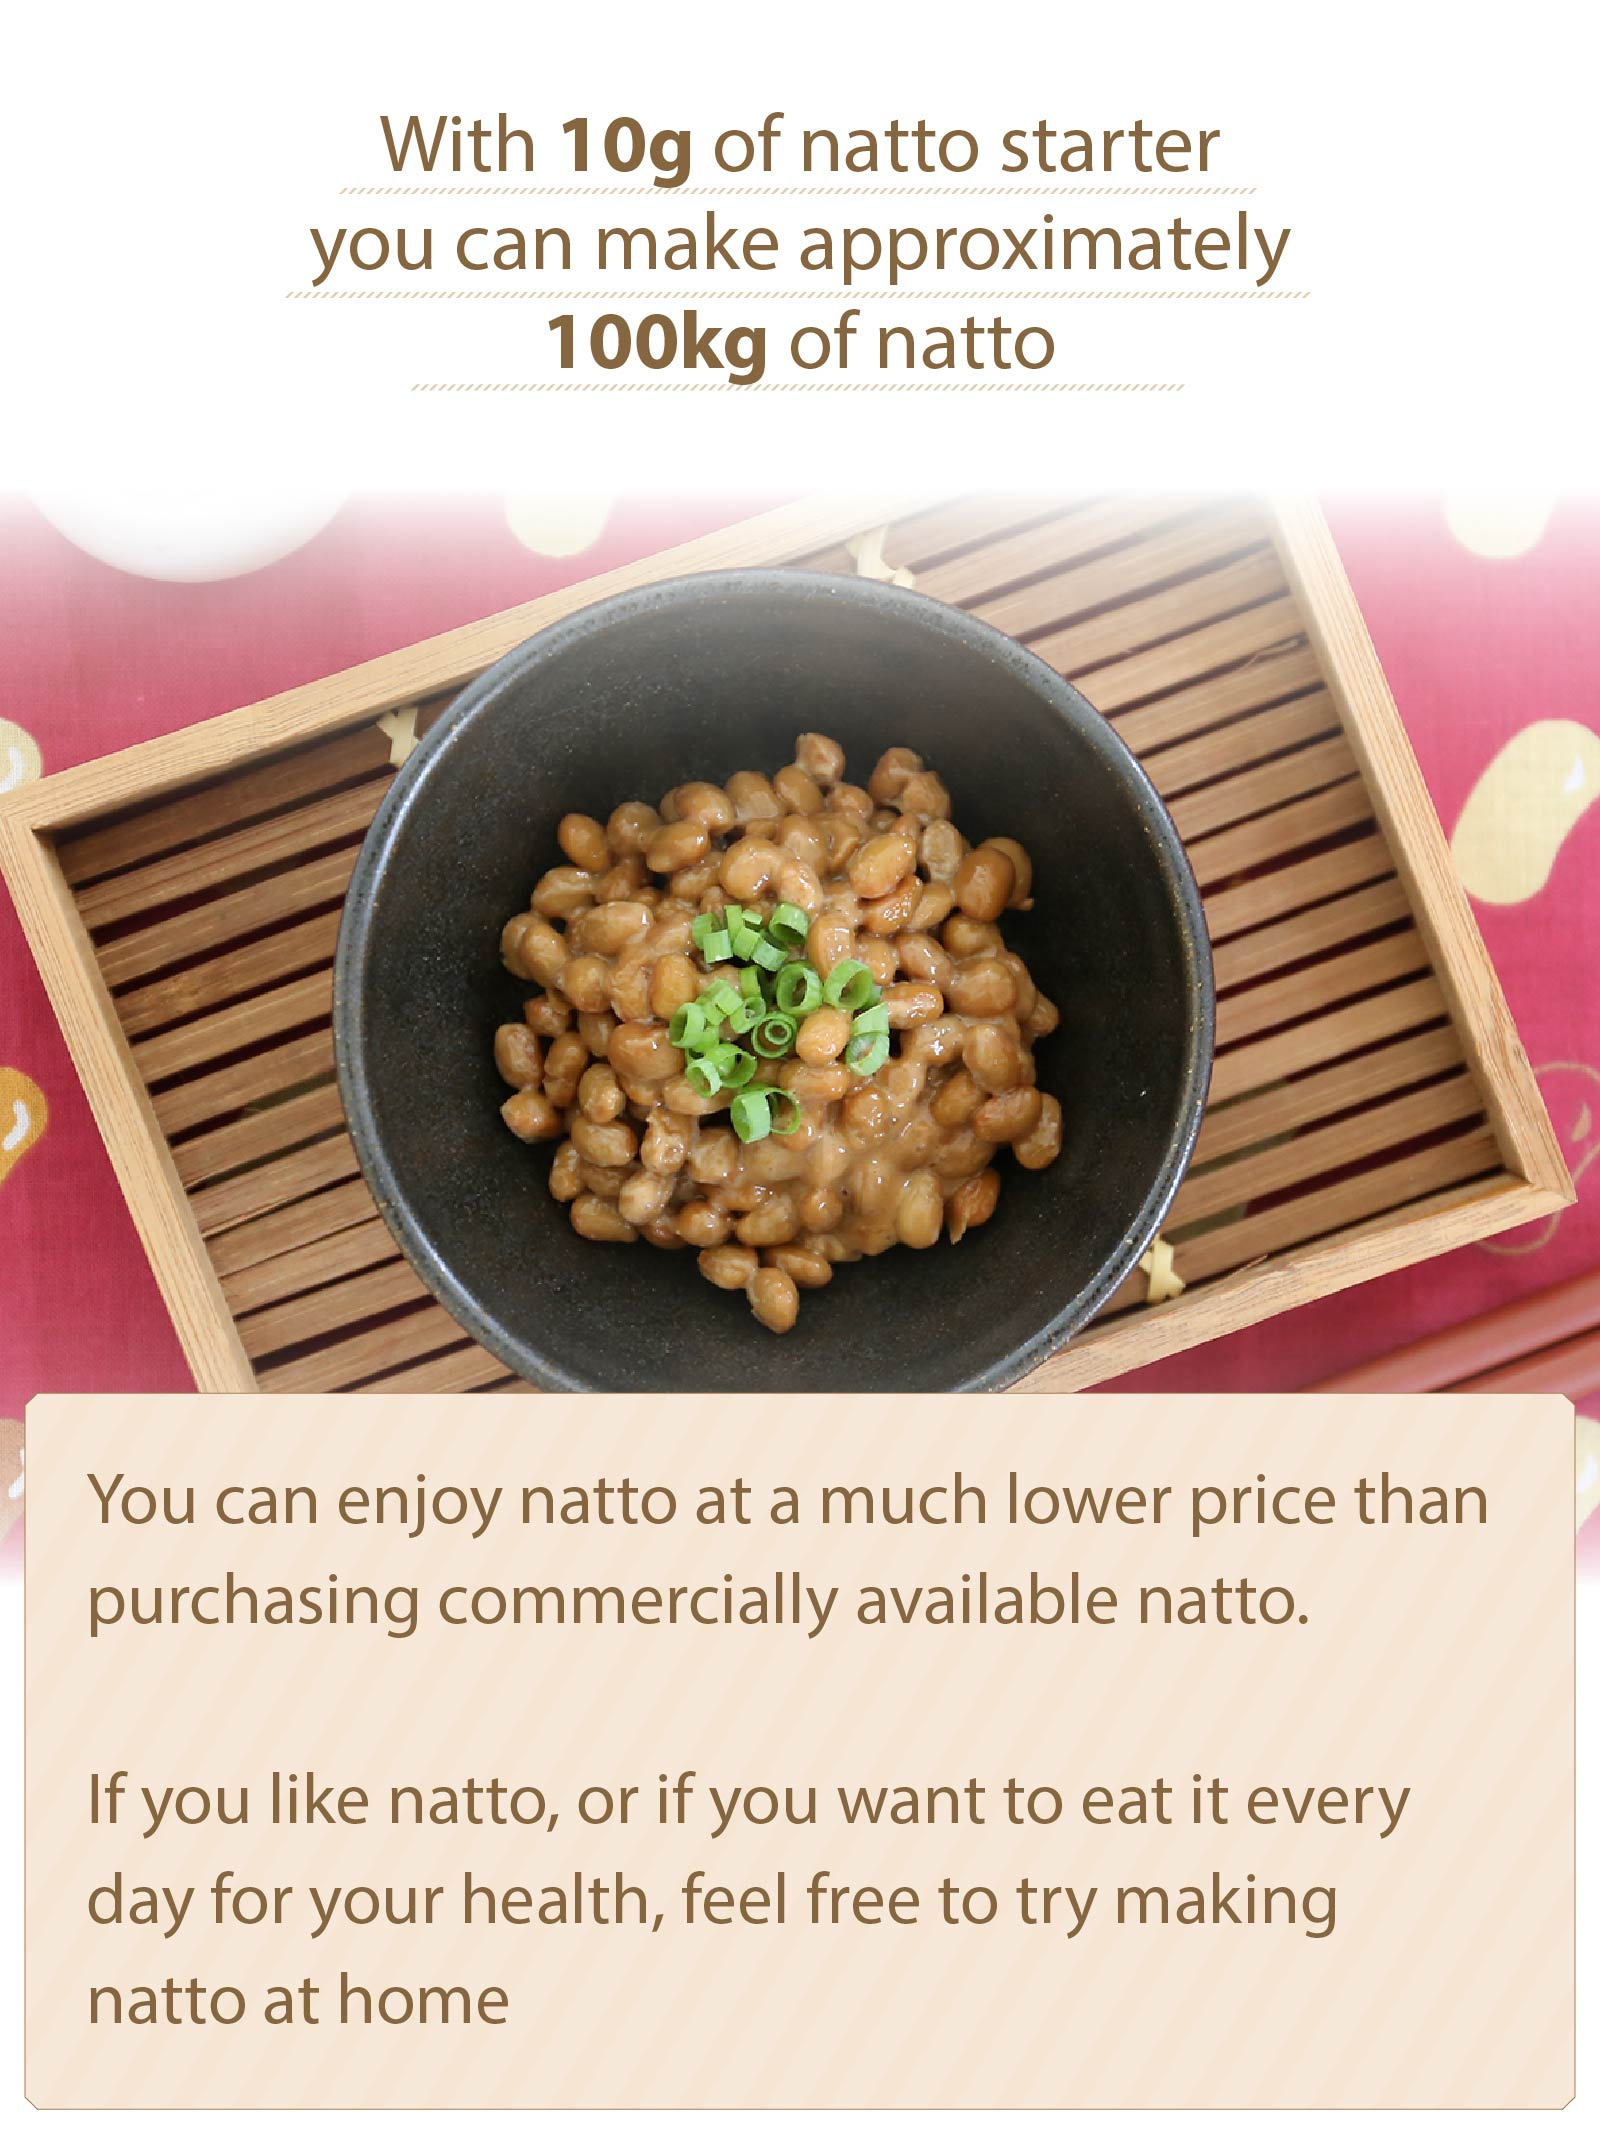 10g Natto Can Make Up to 100kg of Natto